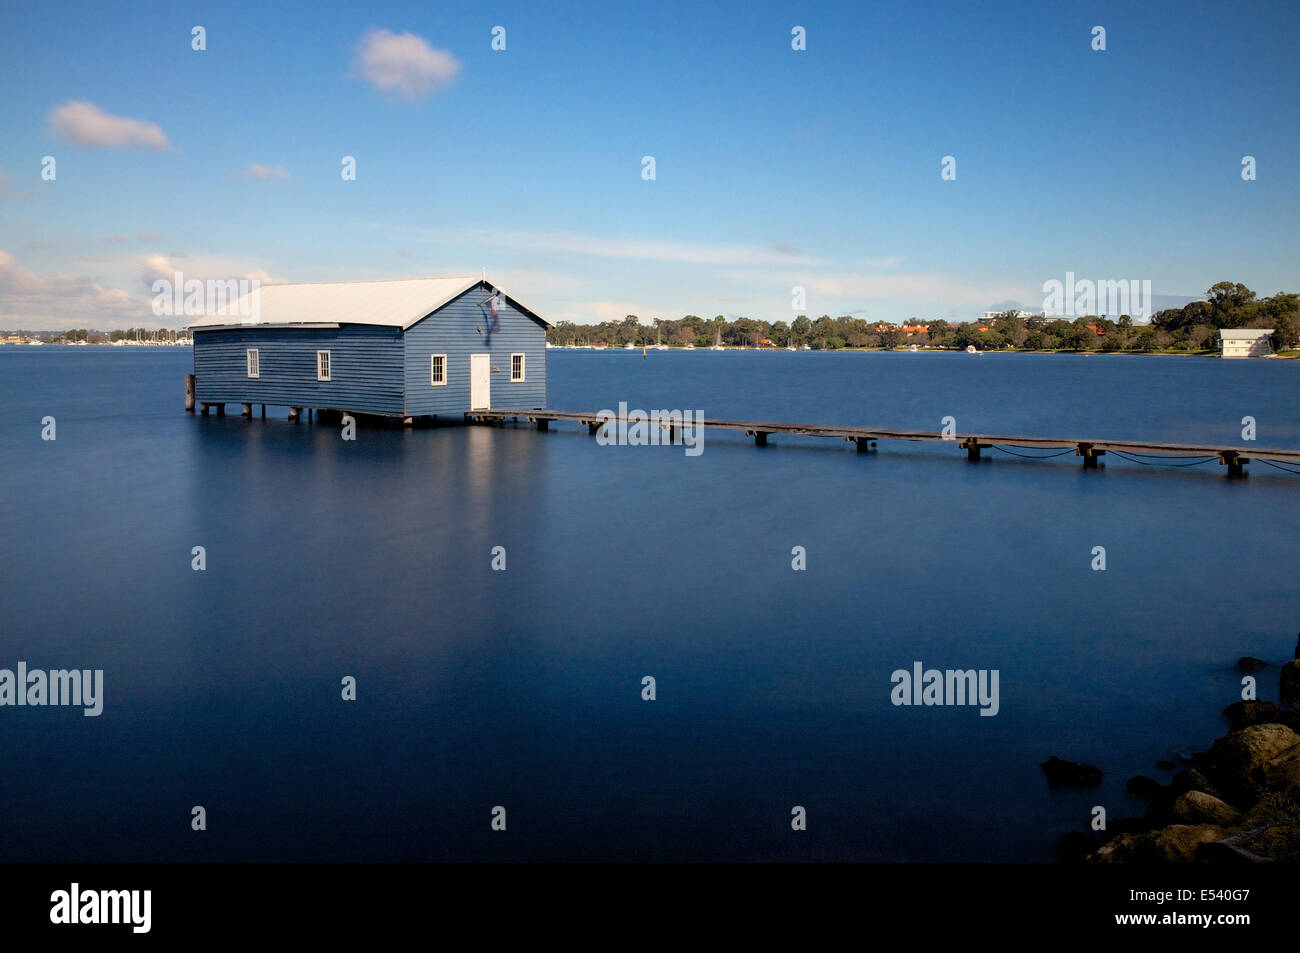 The Crawley Edge Boatshed is a well-recognised and frequently photographed site in Crawley, a suburb of Perth in - Stock Image